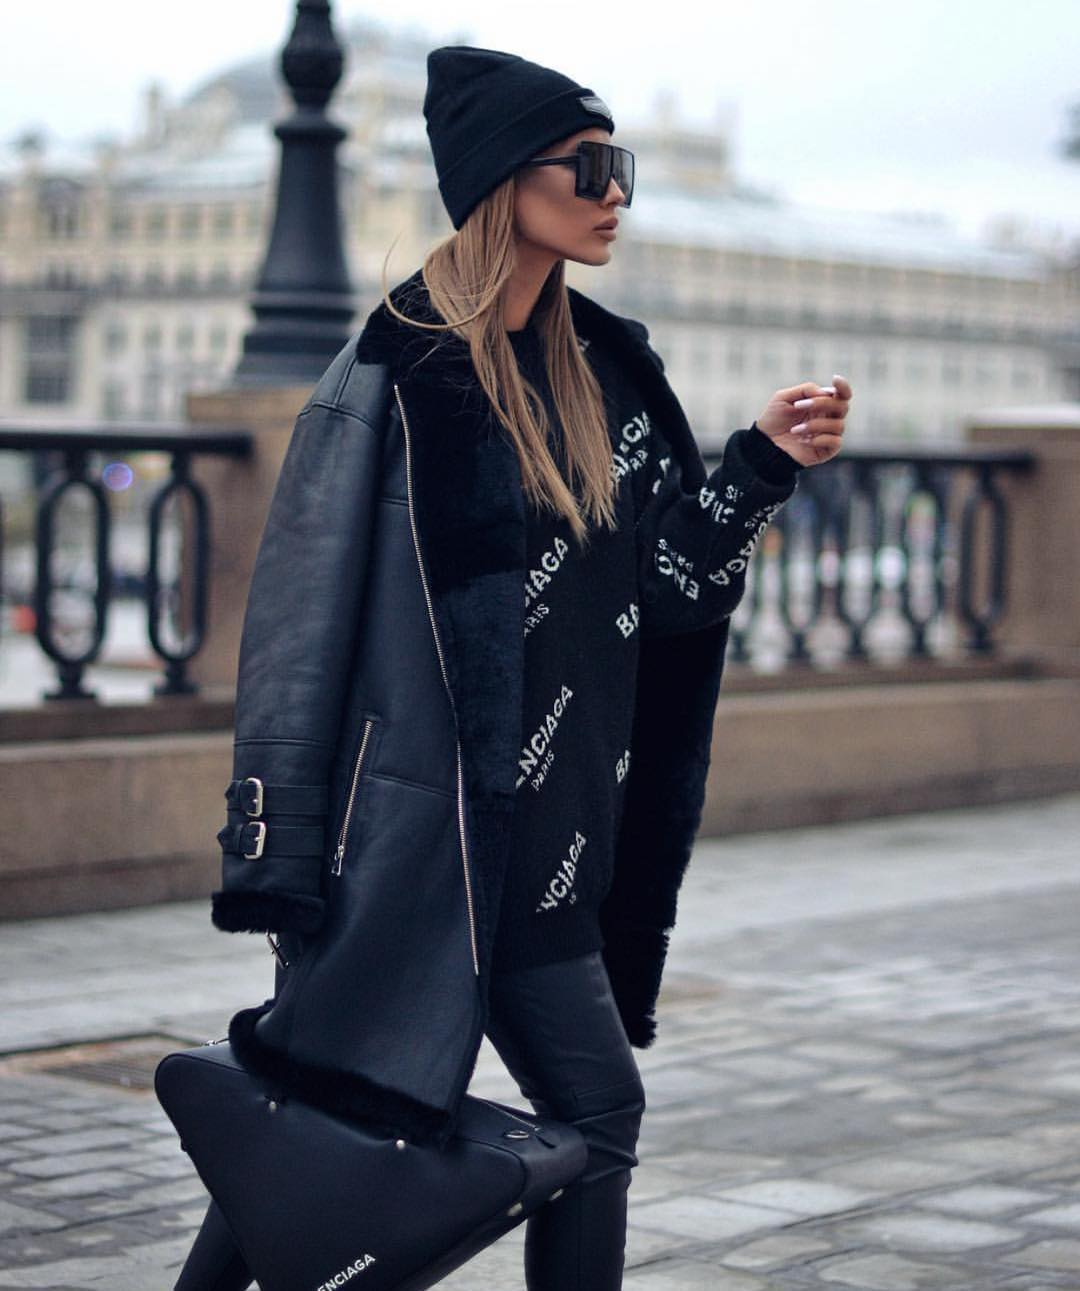 All Black Outfit Idea: Shearling Jacket, Oversized Sweater And Leather Pants 2021